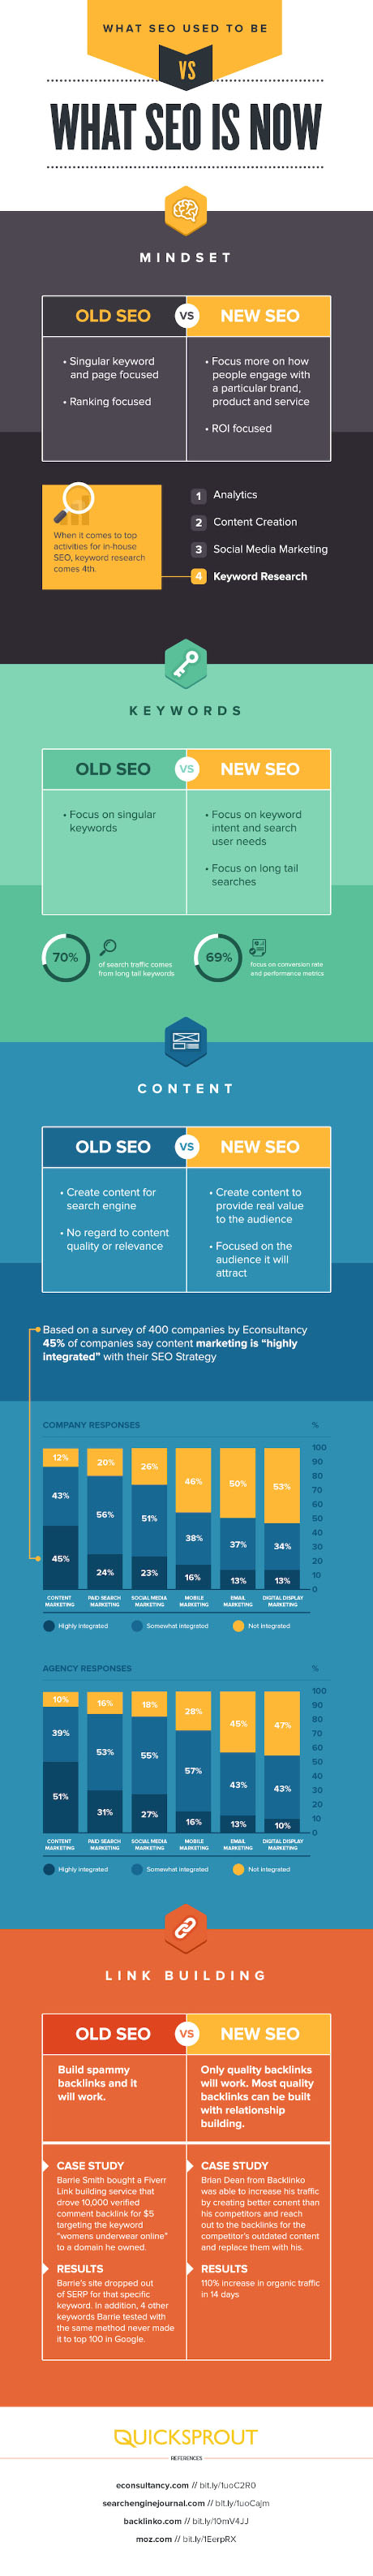 seo-infographic-seo-then-vs-seo-now-small